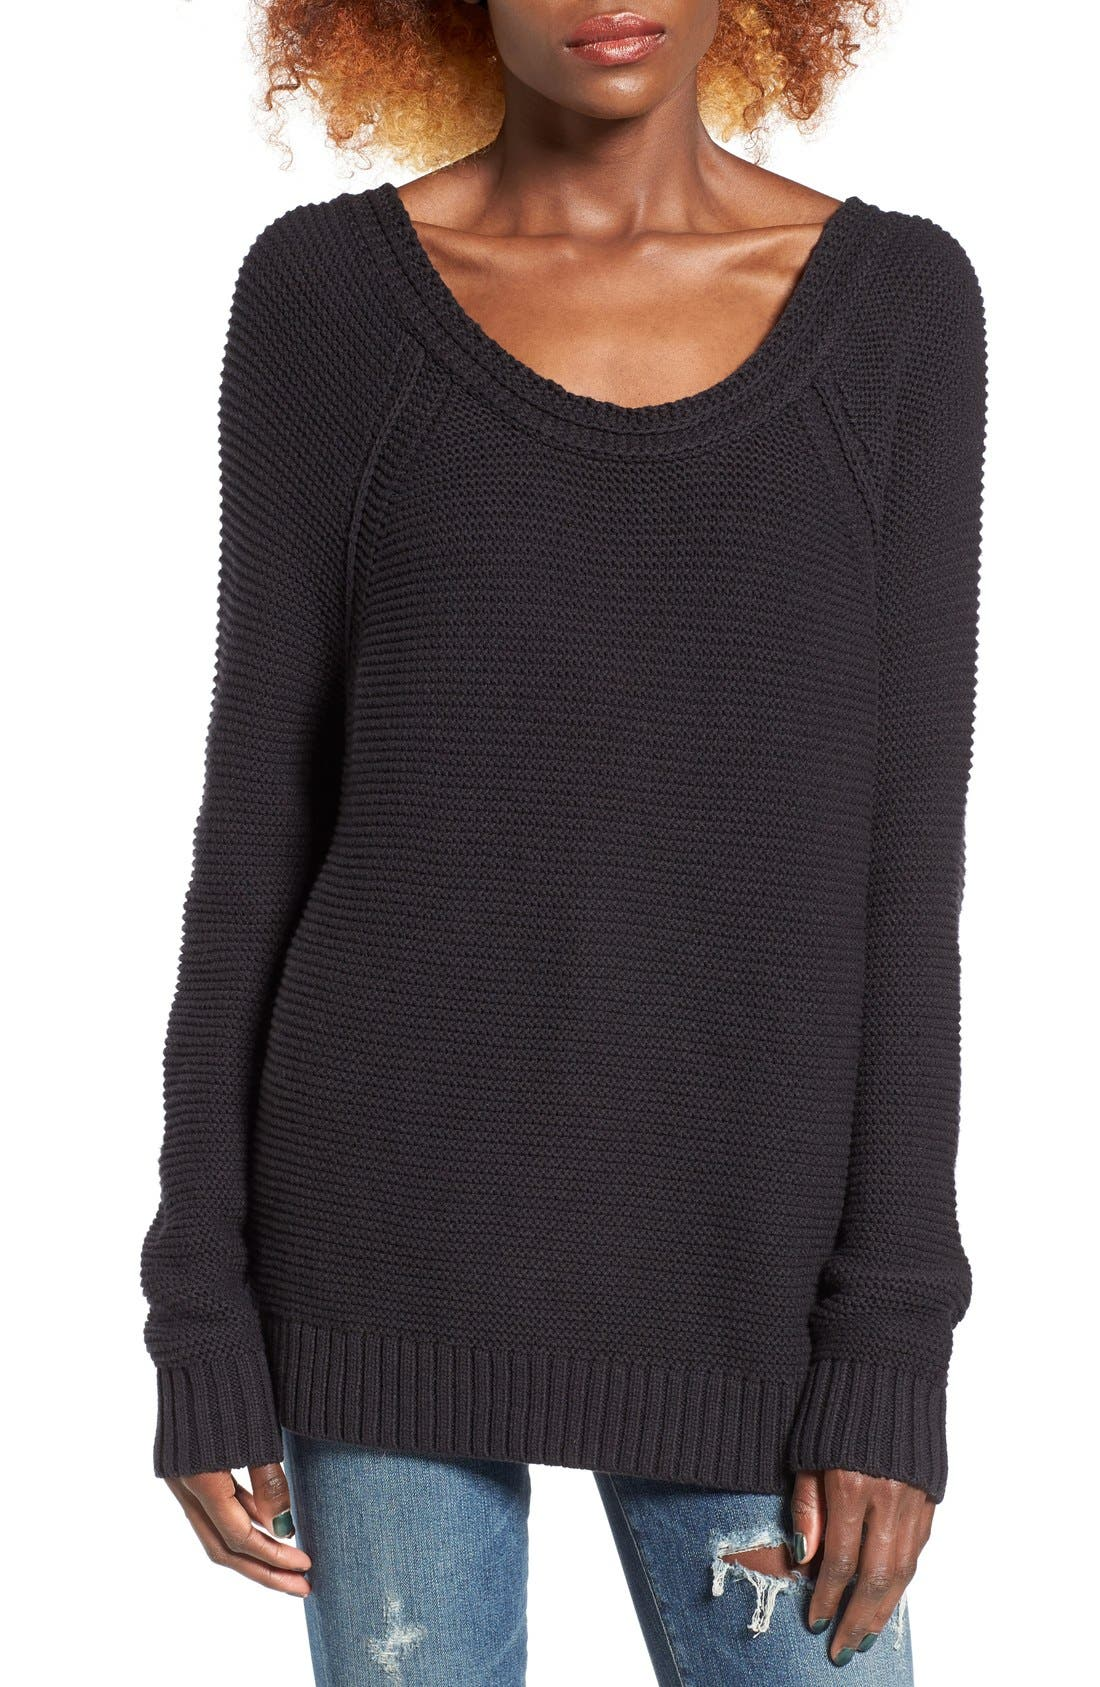 Alternate Image 1 Selected - Roxy Lost Coastlines Knit Sweater